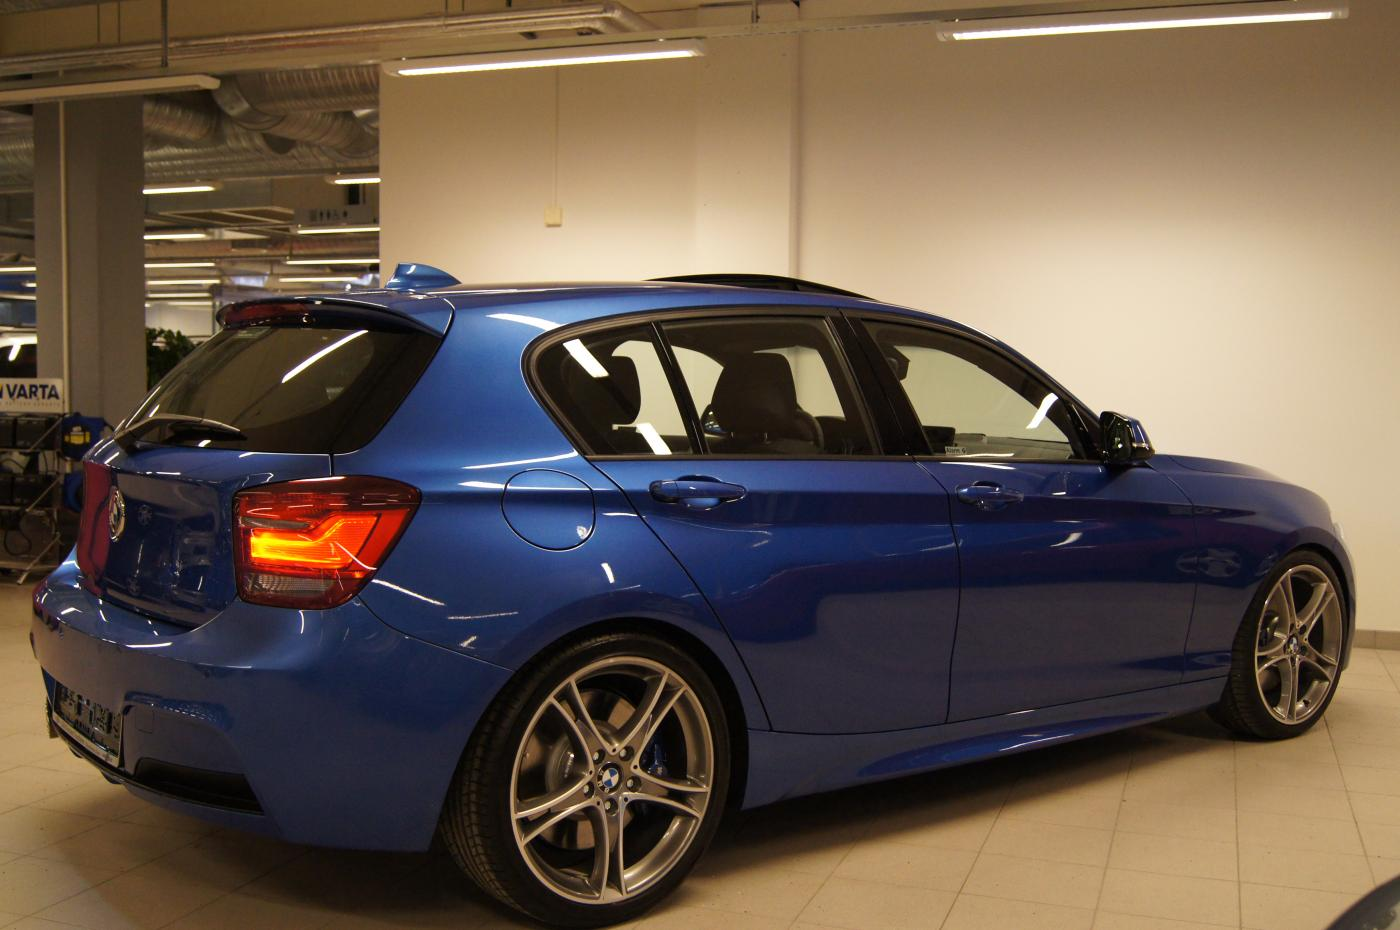 bmw 1er f20 in estoril blue con parti m performance forum bmw per scambiare pareri opinioni. Black Bedroom Furniture Sets. Home Design Ideas